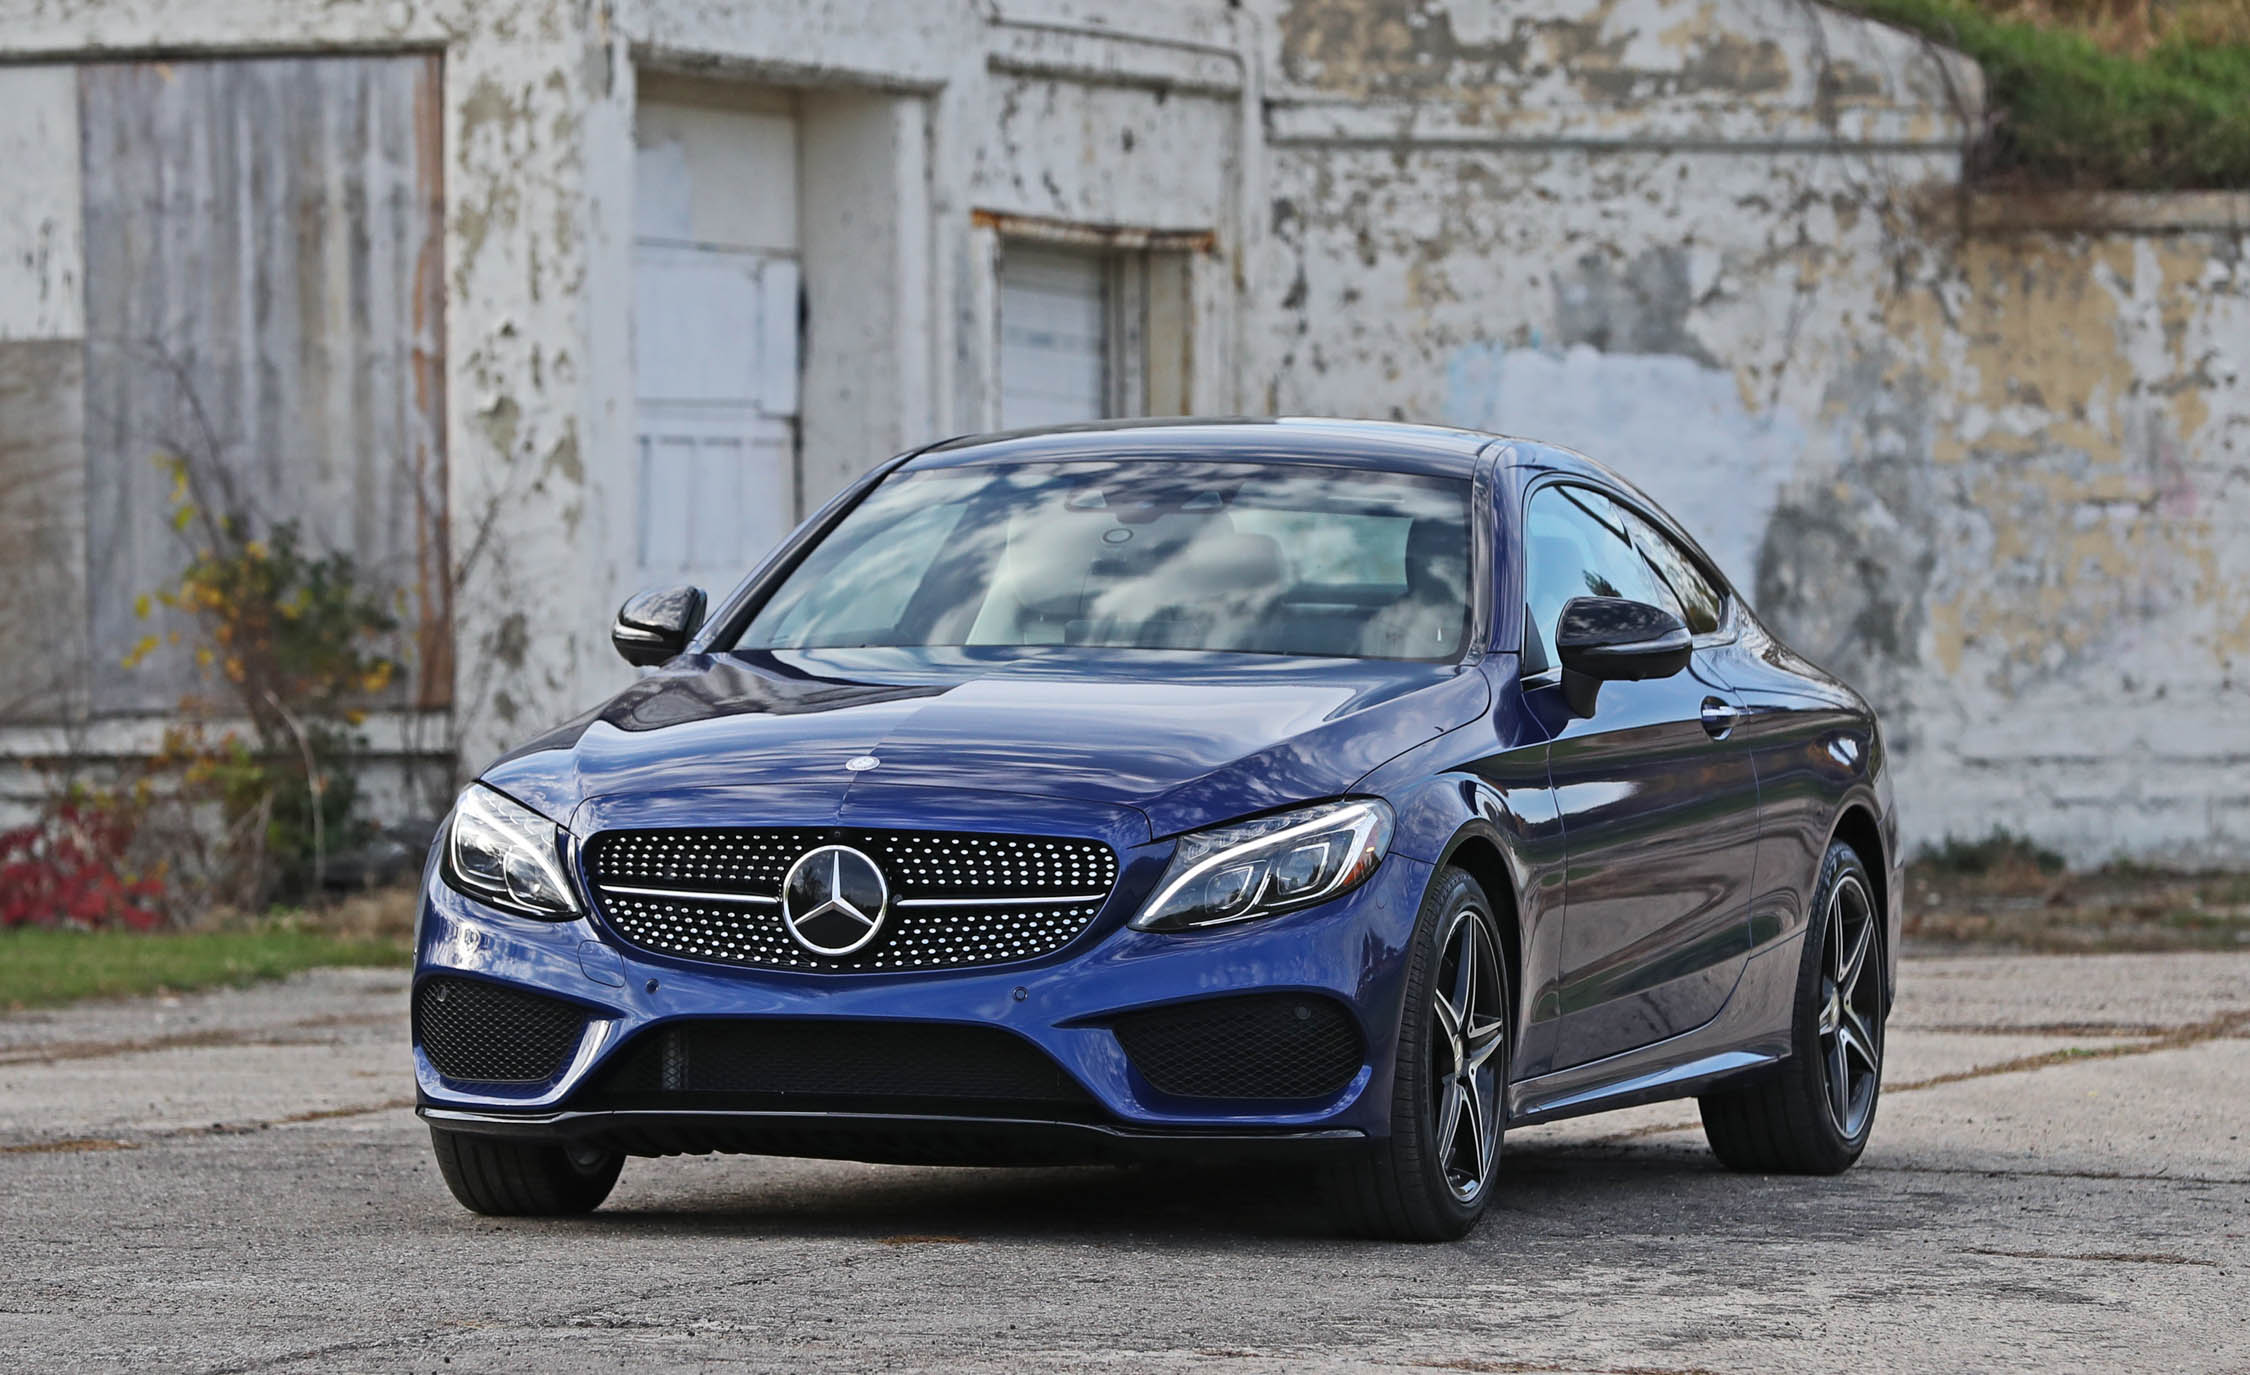 2017 Mercedes Benz C300 4MATIC Coupe Exterior Front (Photo 5 of 44)